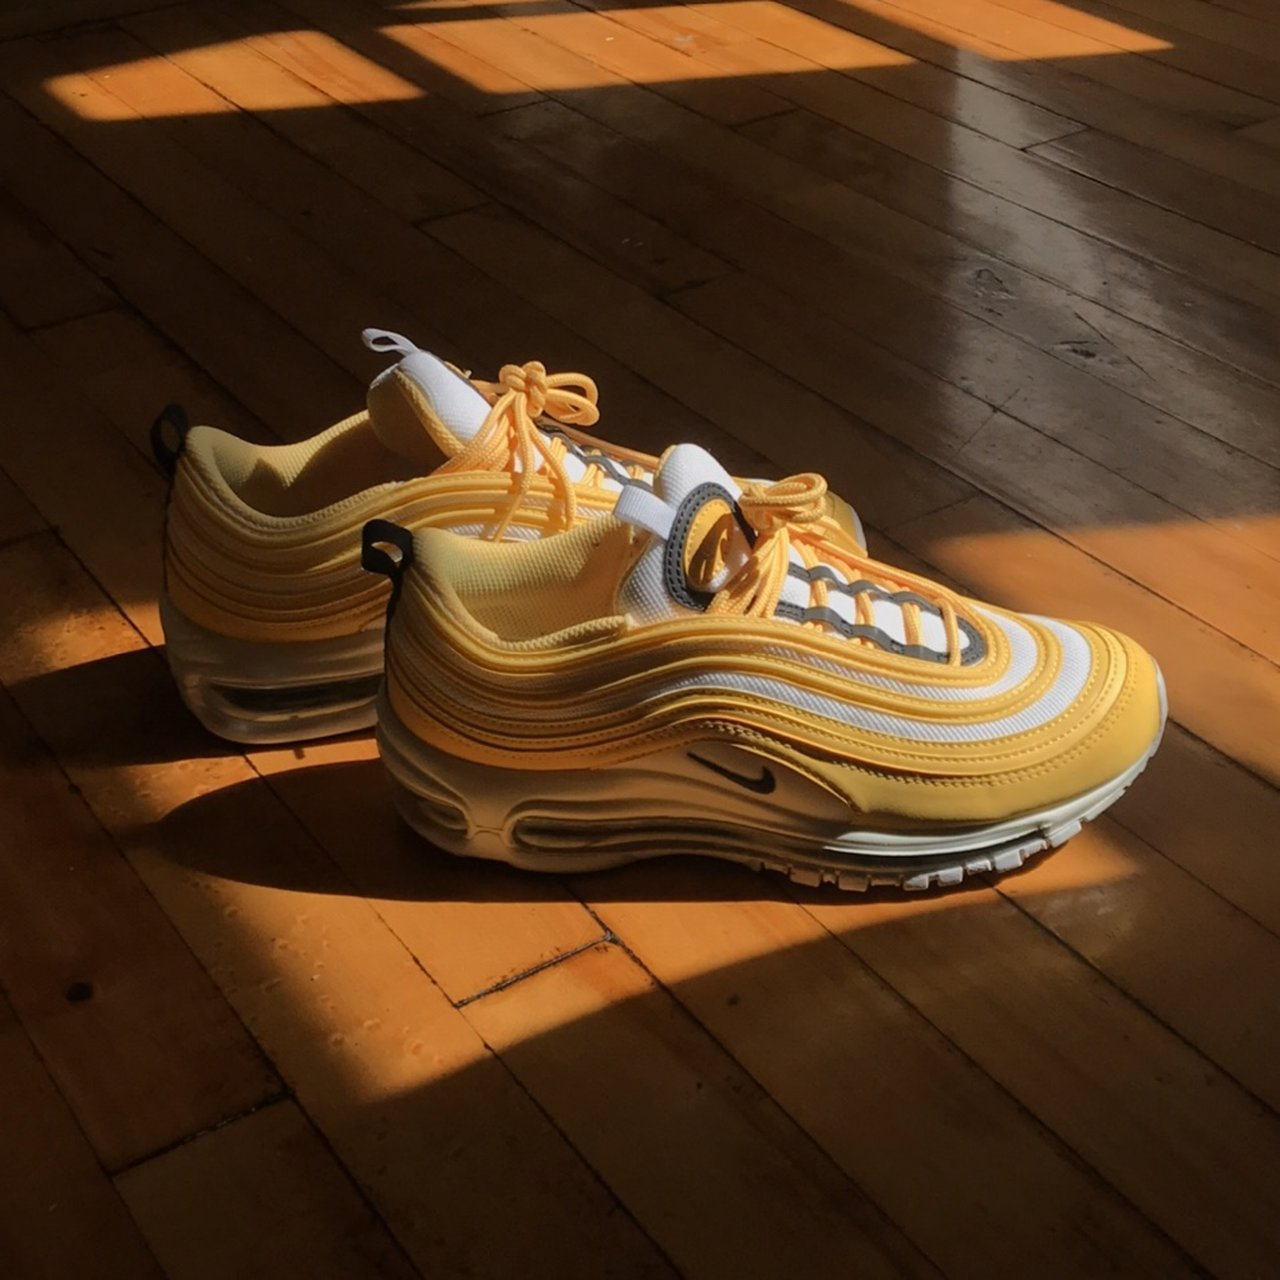 Nike Air Max 97's Lovely and bright